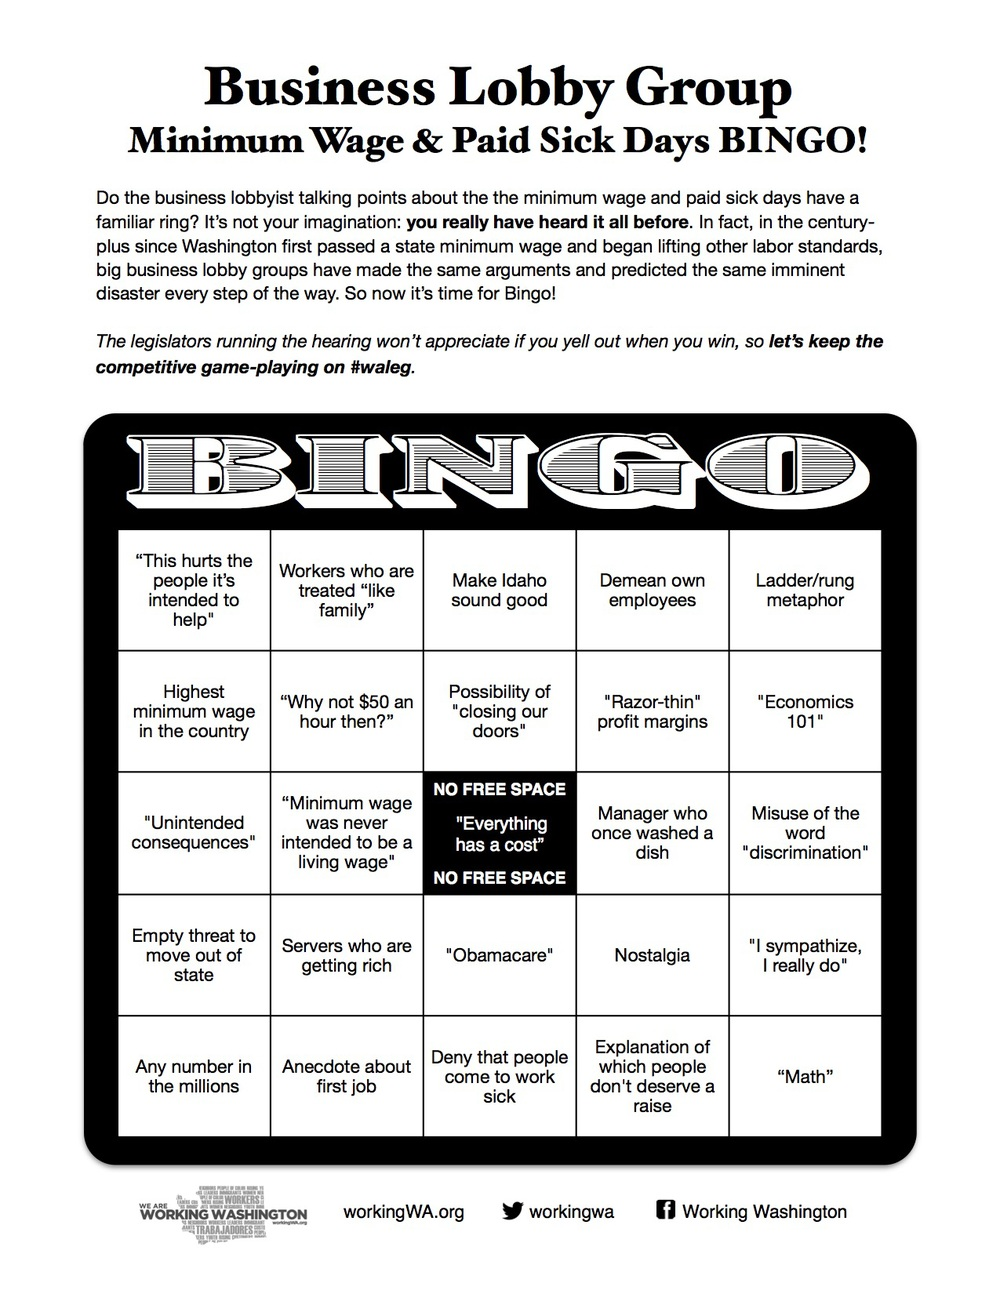 bingo cards_1sample.jpg